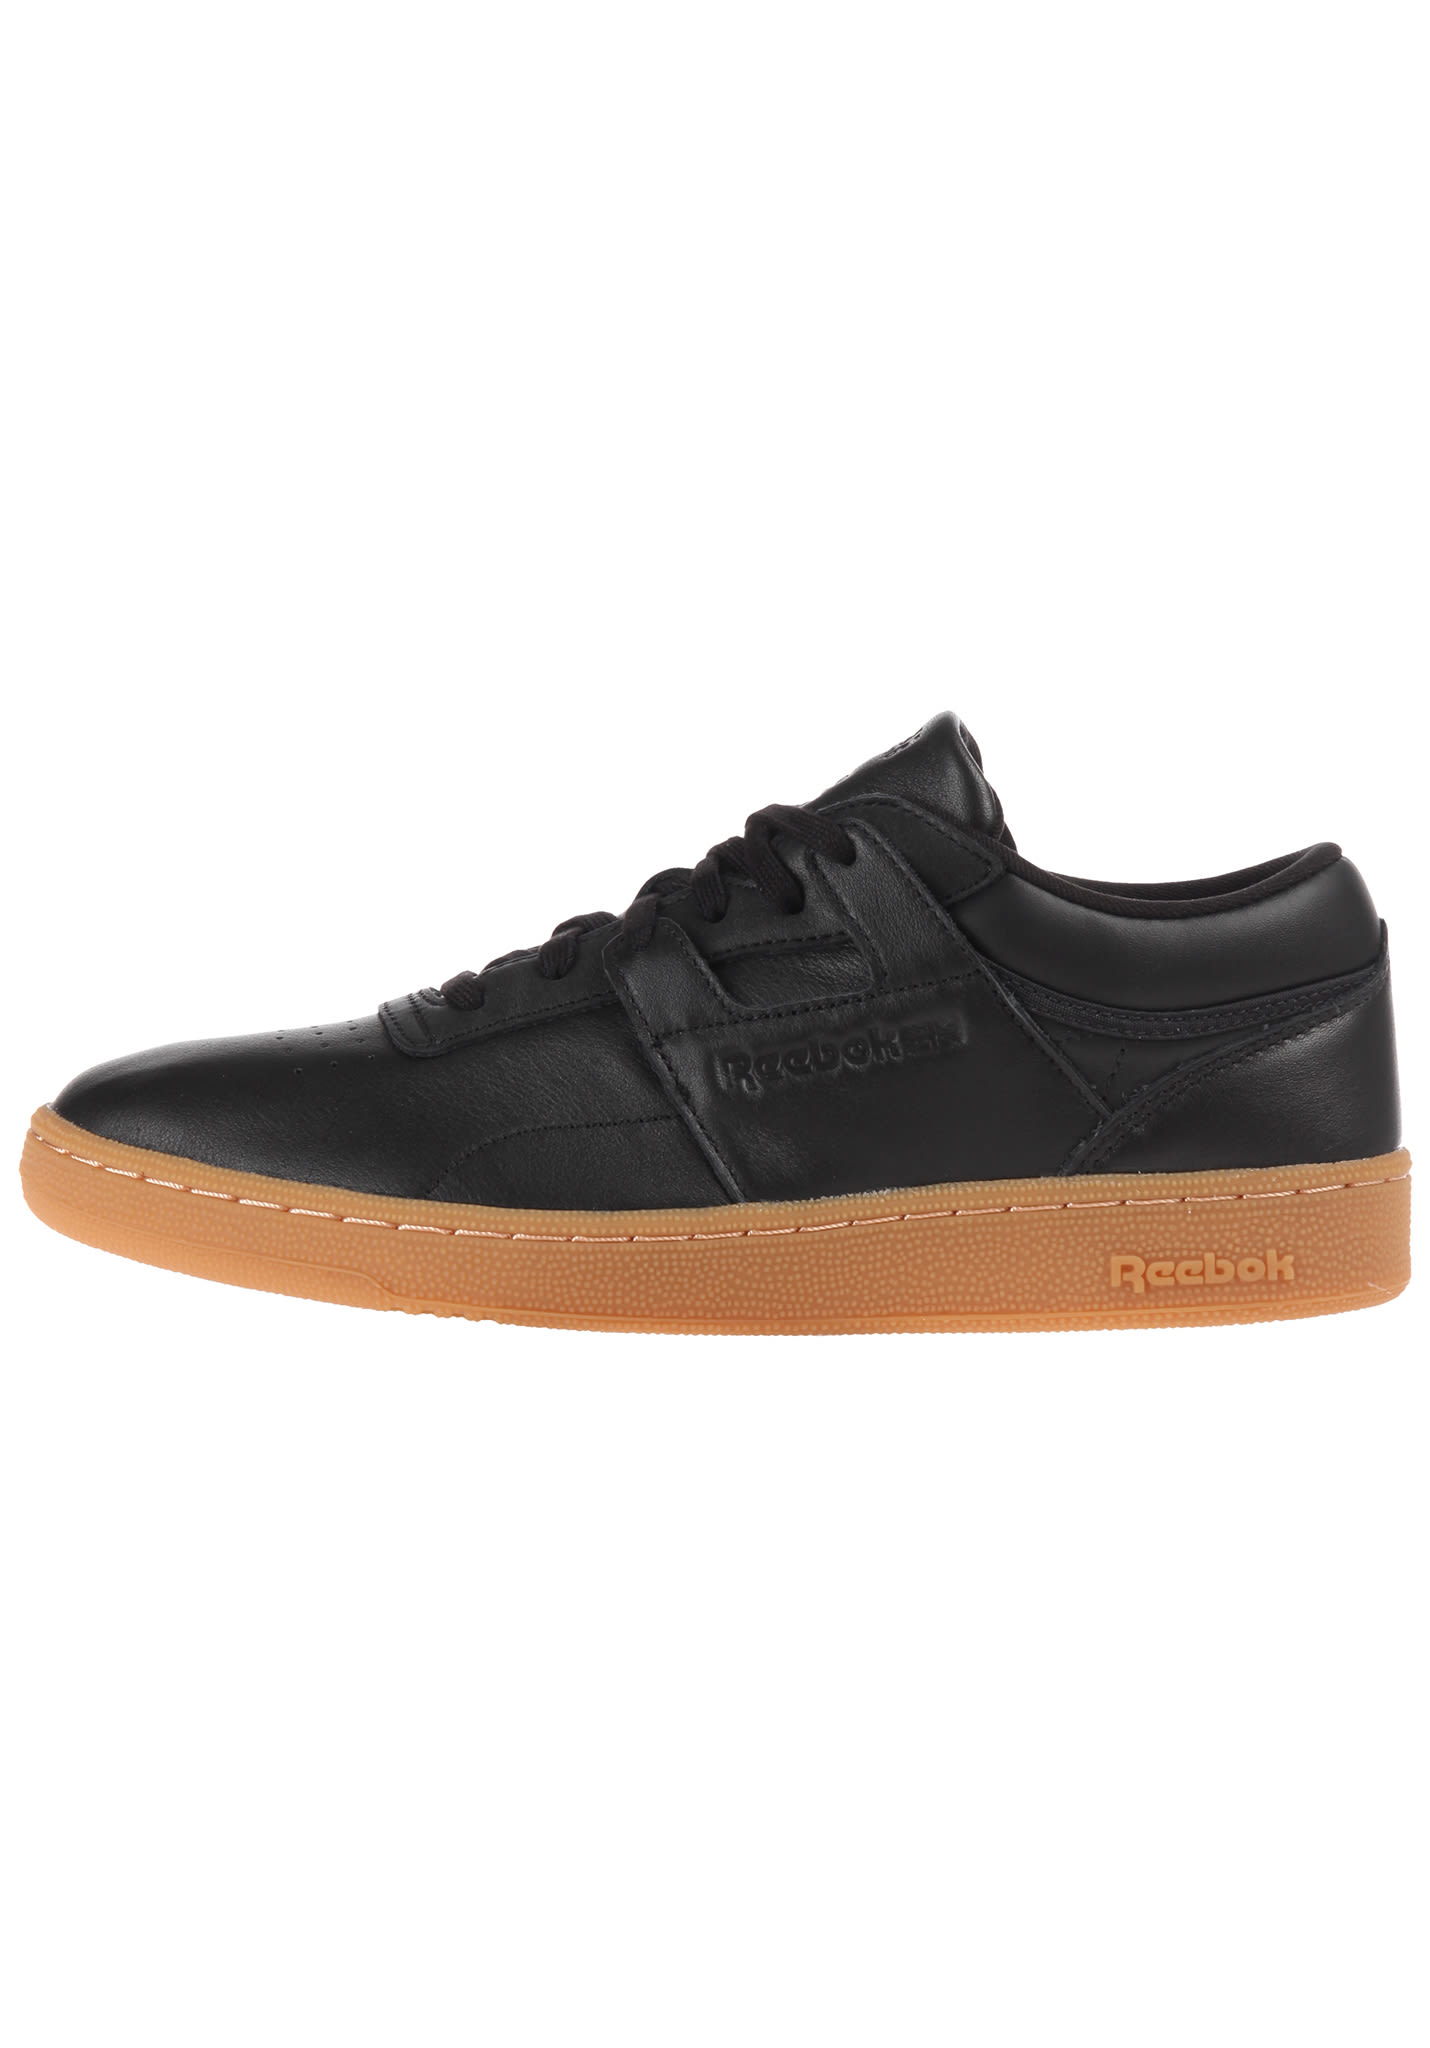 Reebok Club Workout - Sneakers for Men - Black - Planet Sports 0548a603f